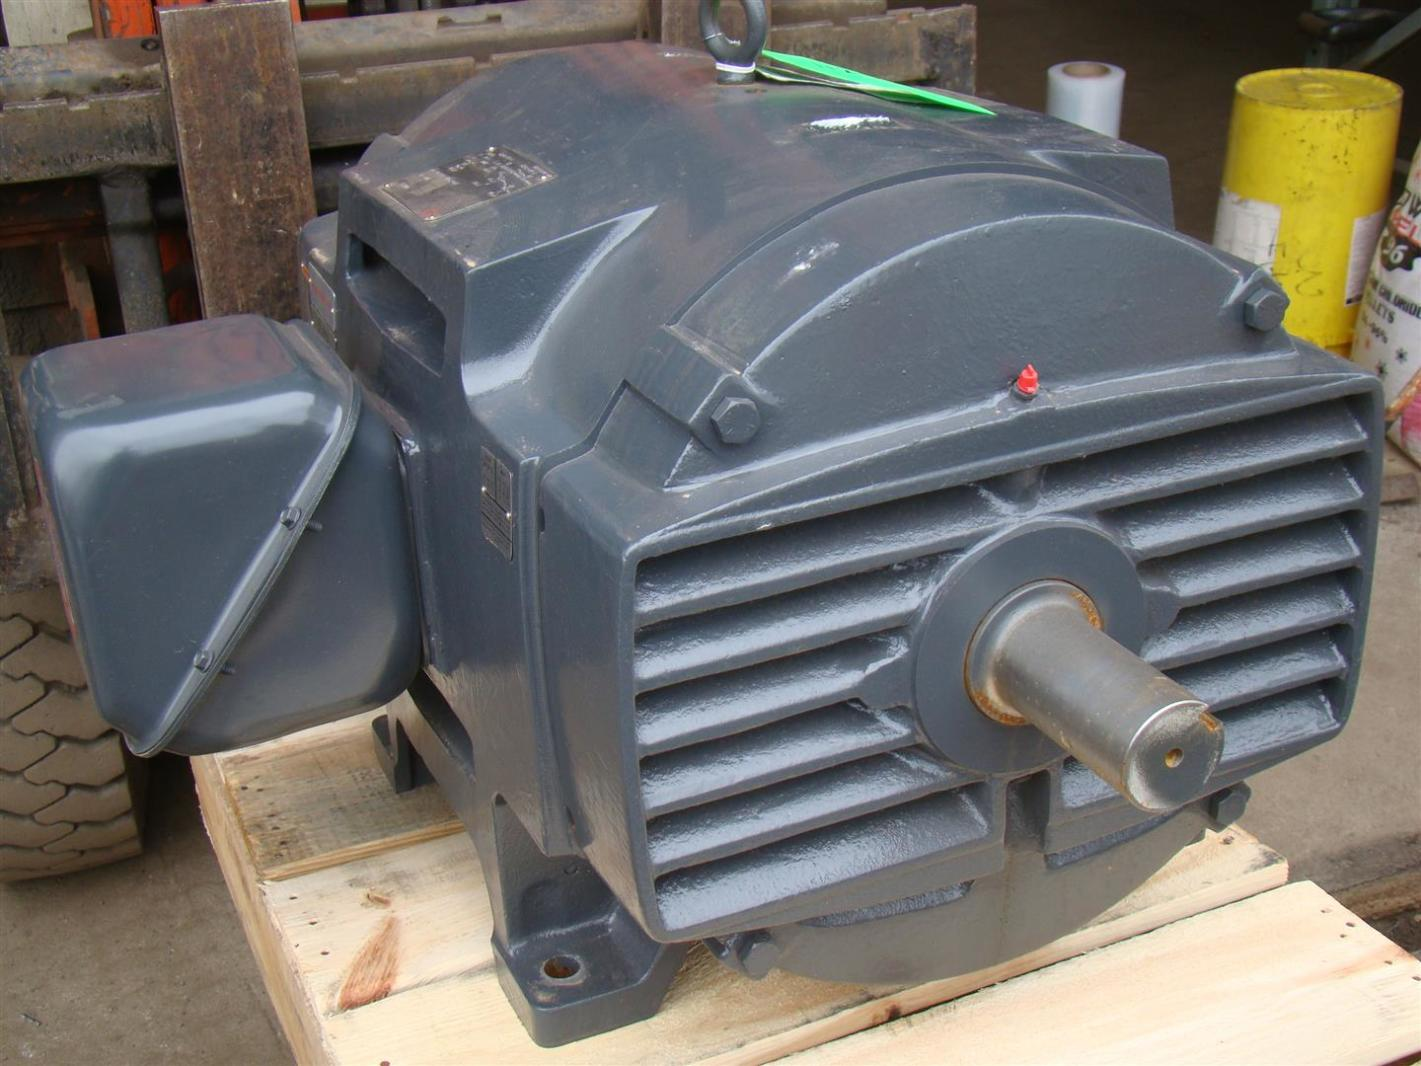 Us motors nidec 3 phase electric fire pump motor 100 hp for Electric motor 100 hp